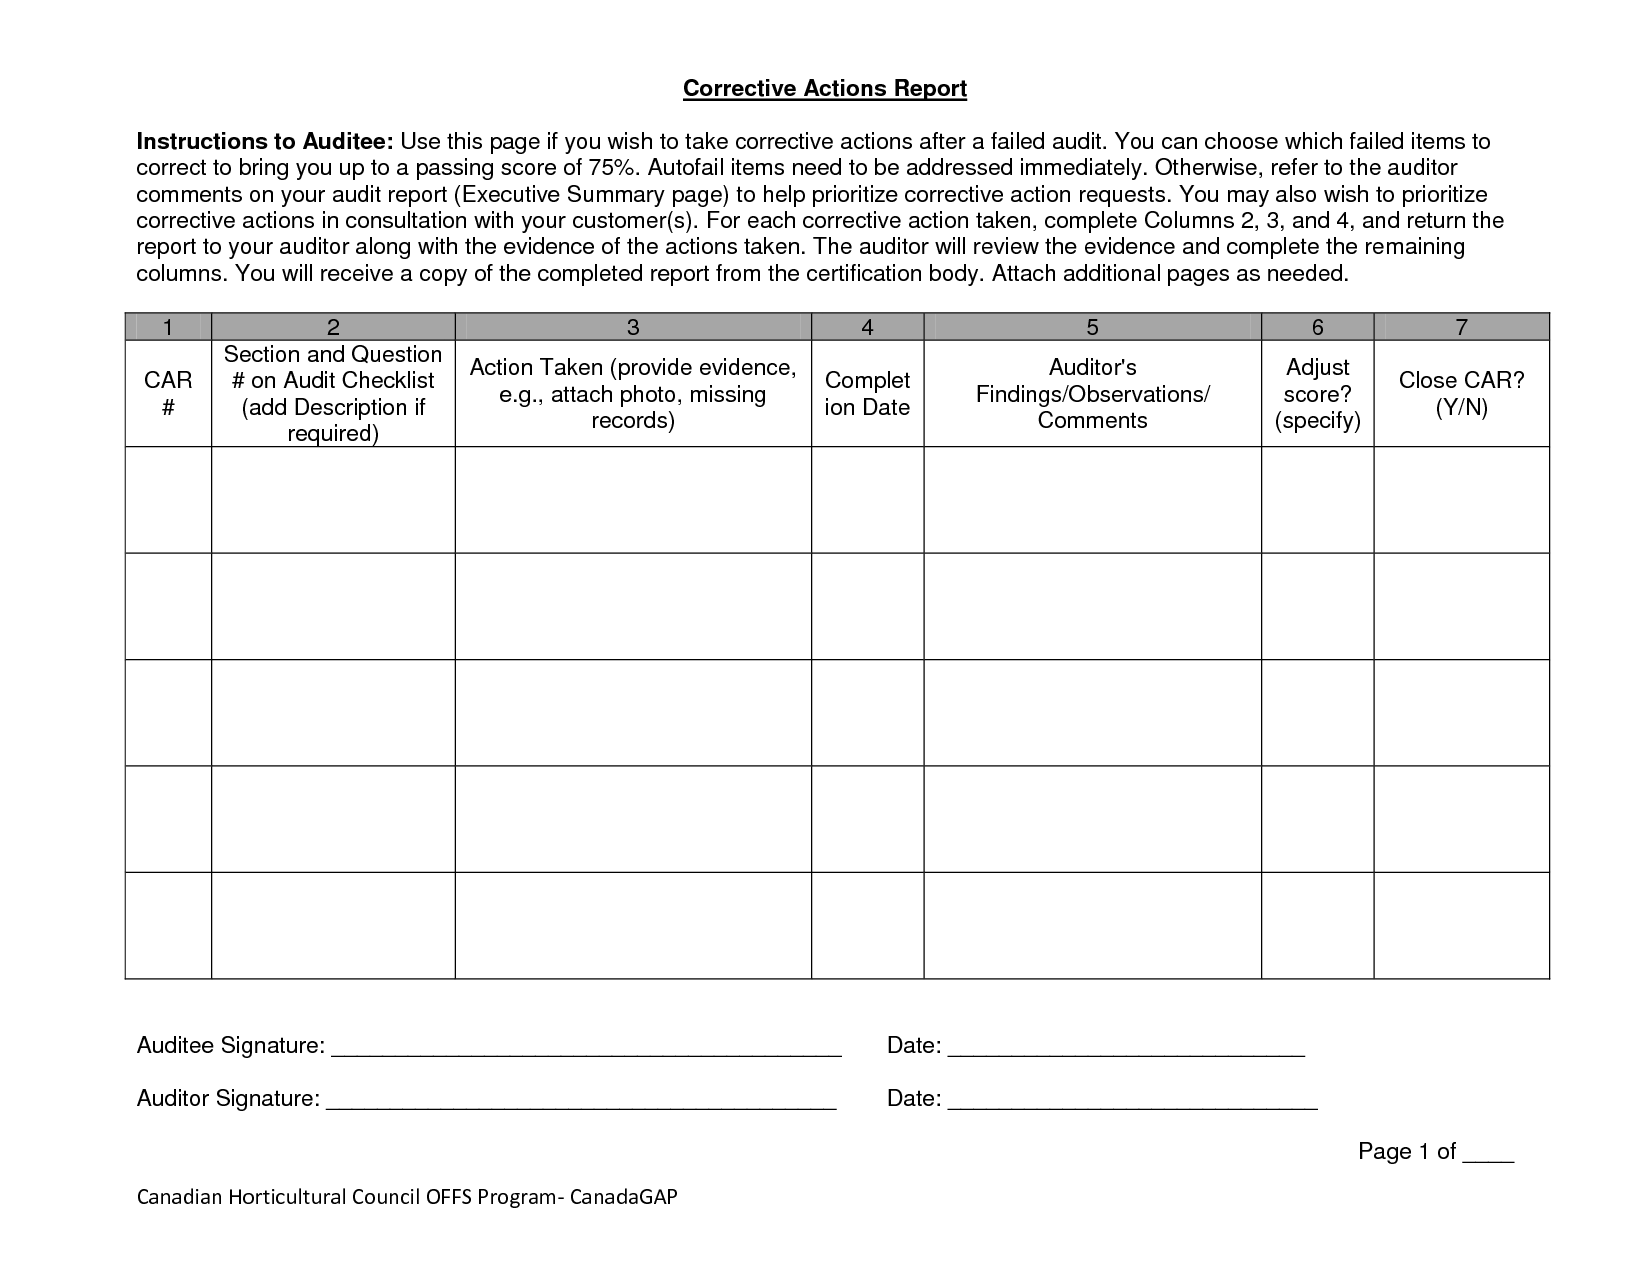 Personal Risk Assessment Worksheet